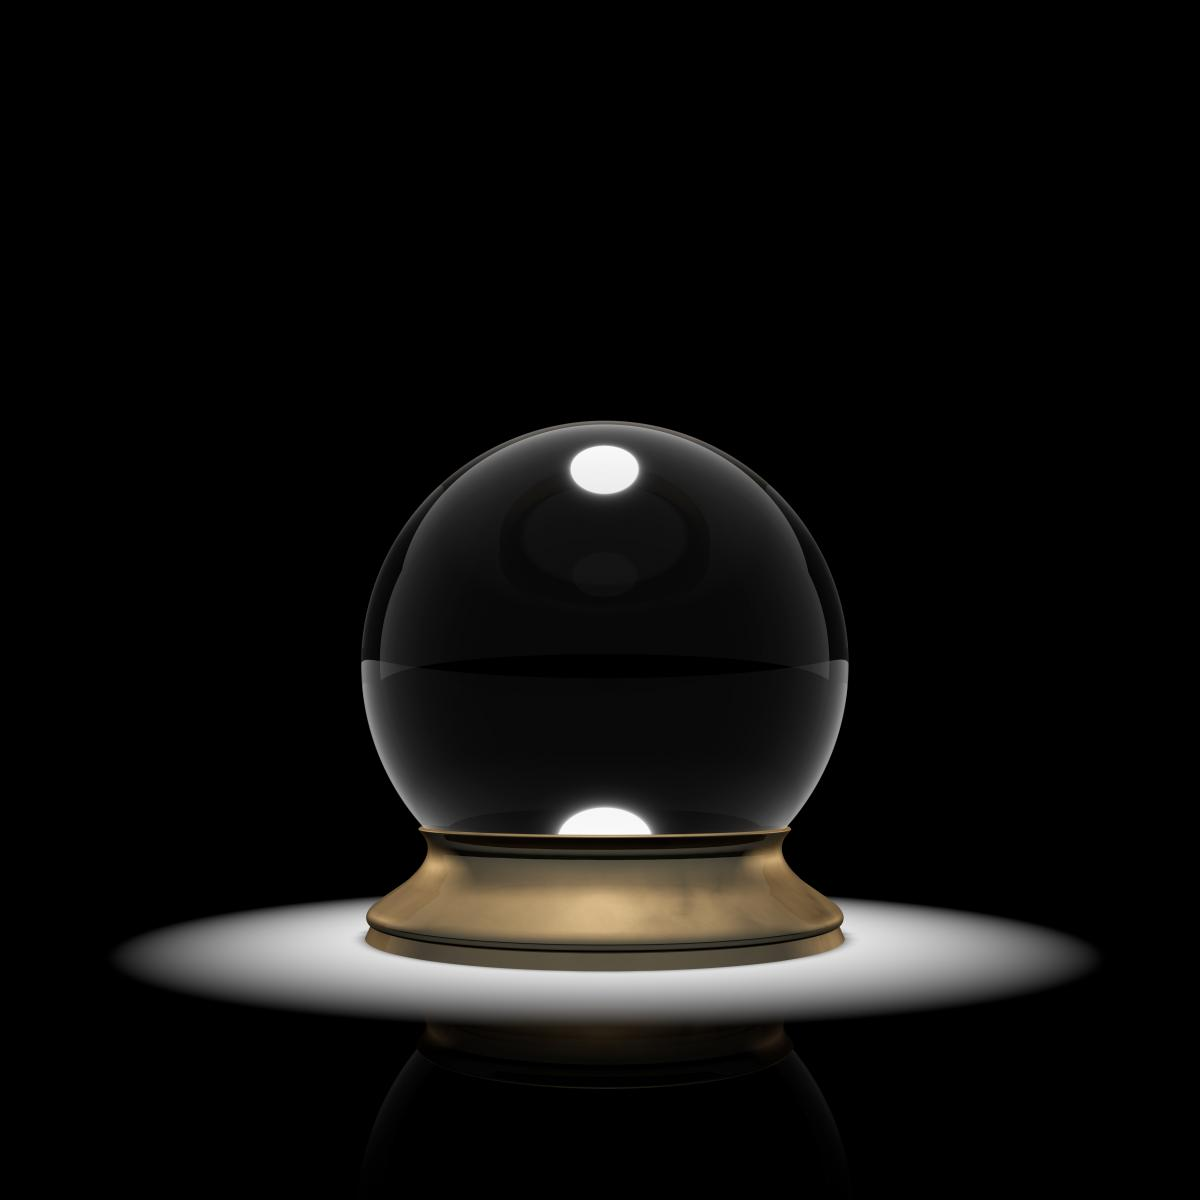 crystal-ball-in-a-spotlight-on-black-background